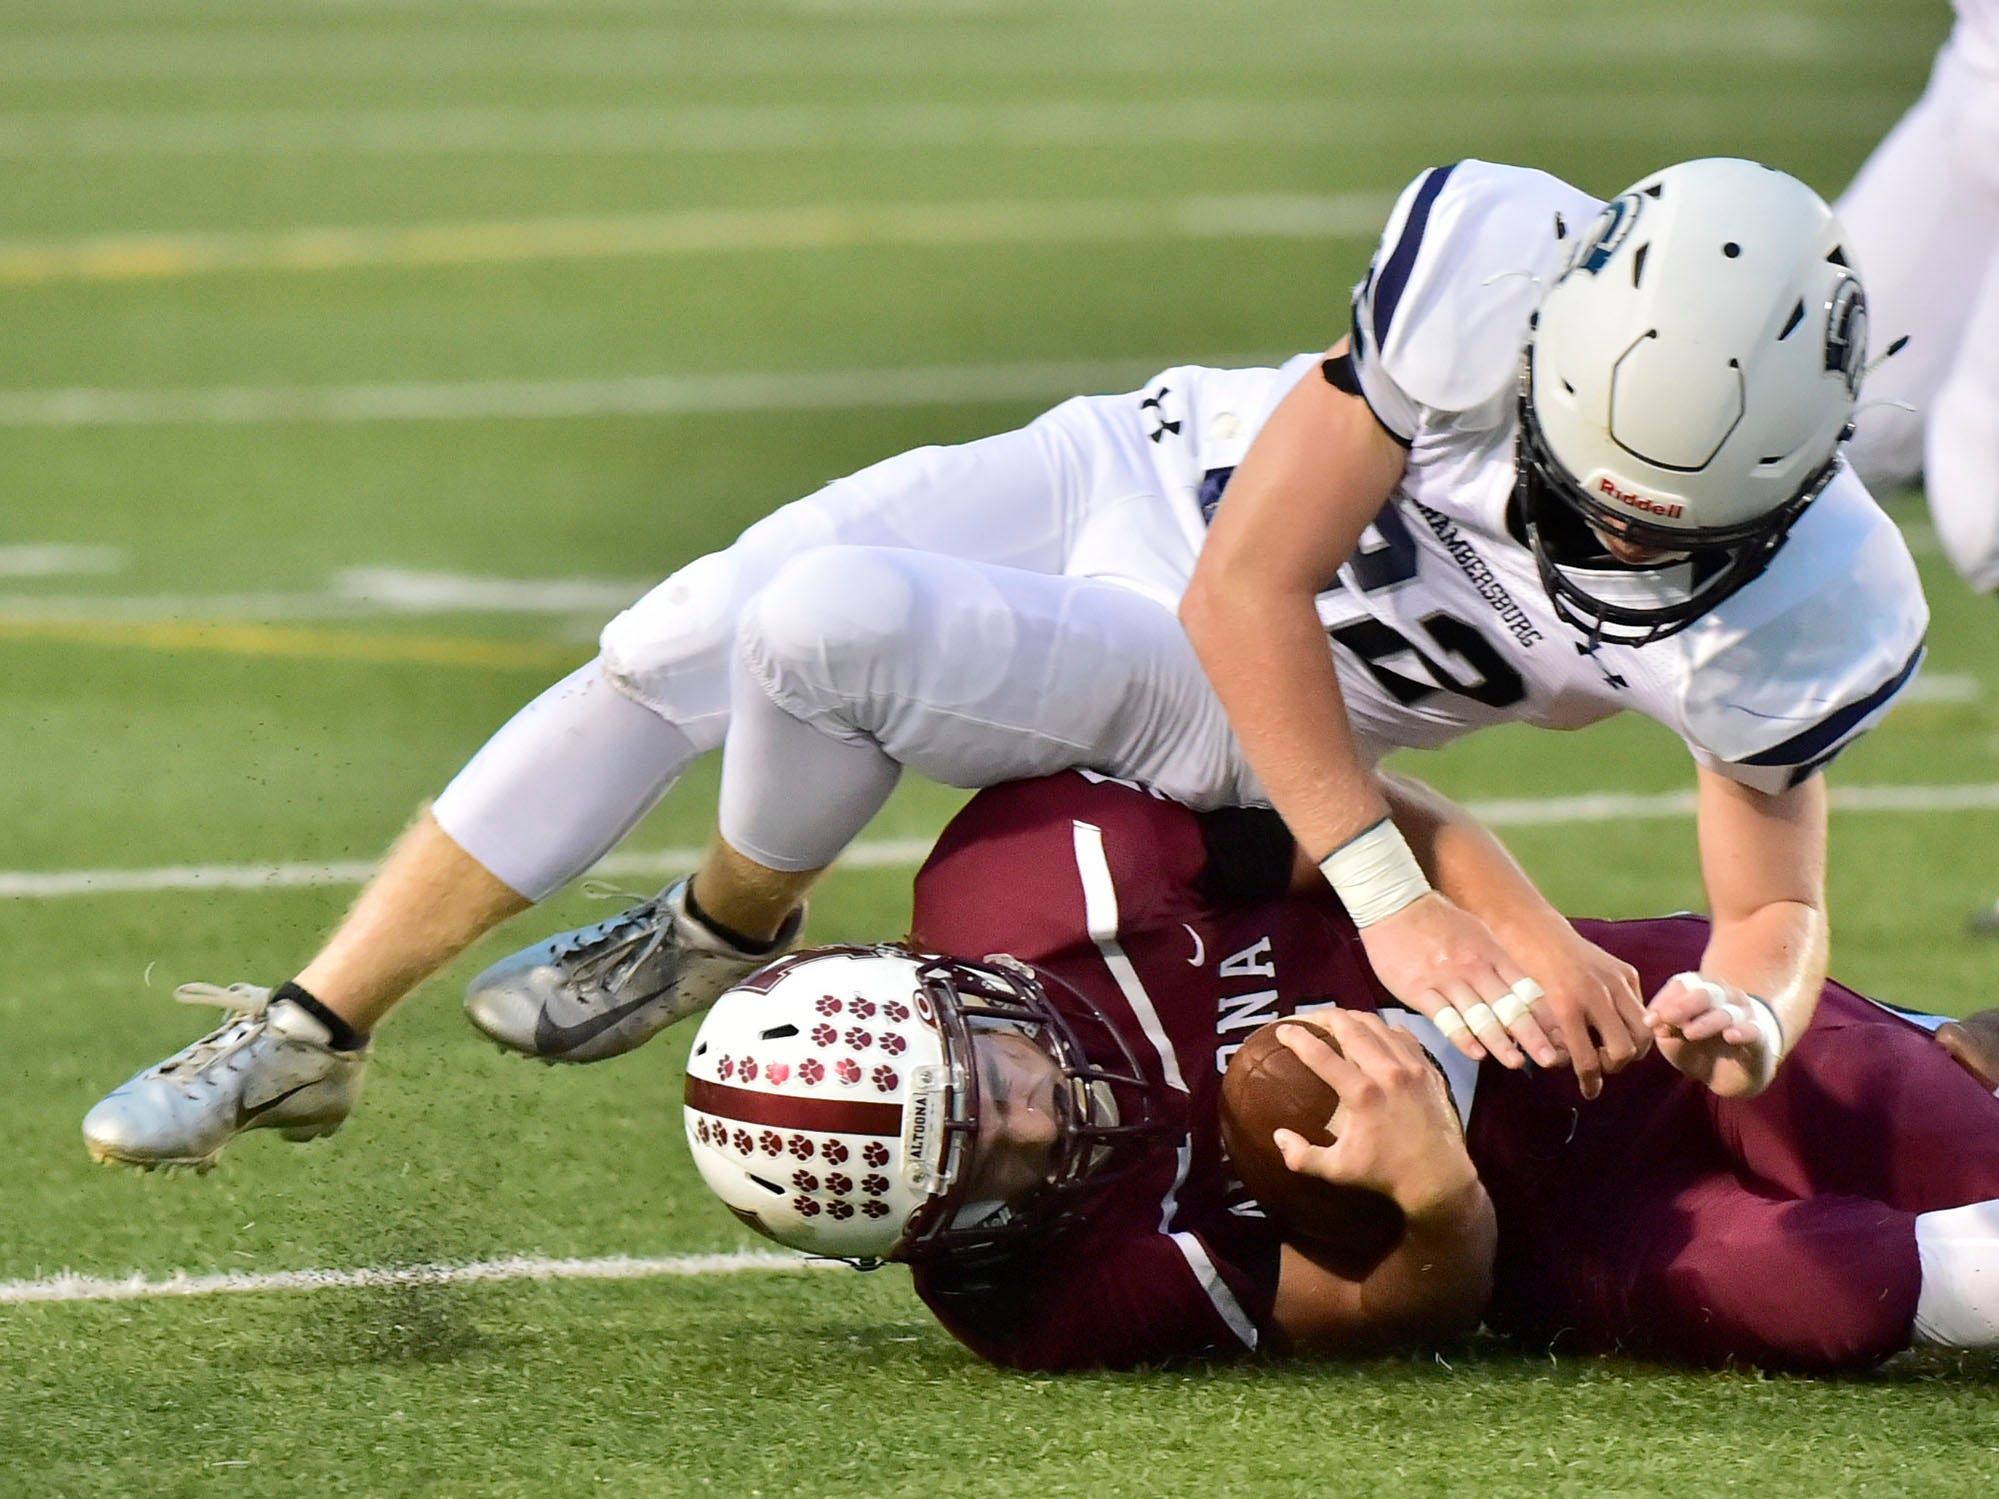 Chambersburg's Tucker Perry (22) makes a tackle on Altoona QB Conner McCarthy. Chambersburg defeated Altoona 48-28 in PIAA football to move to 4-0 on Friday, Sept. 14, 2018.